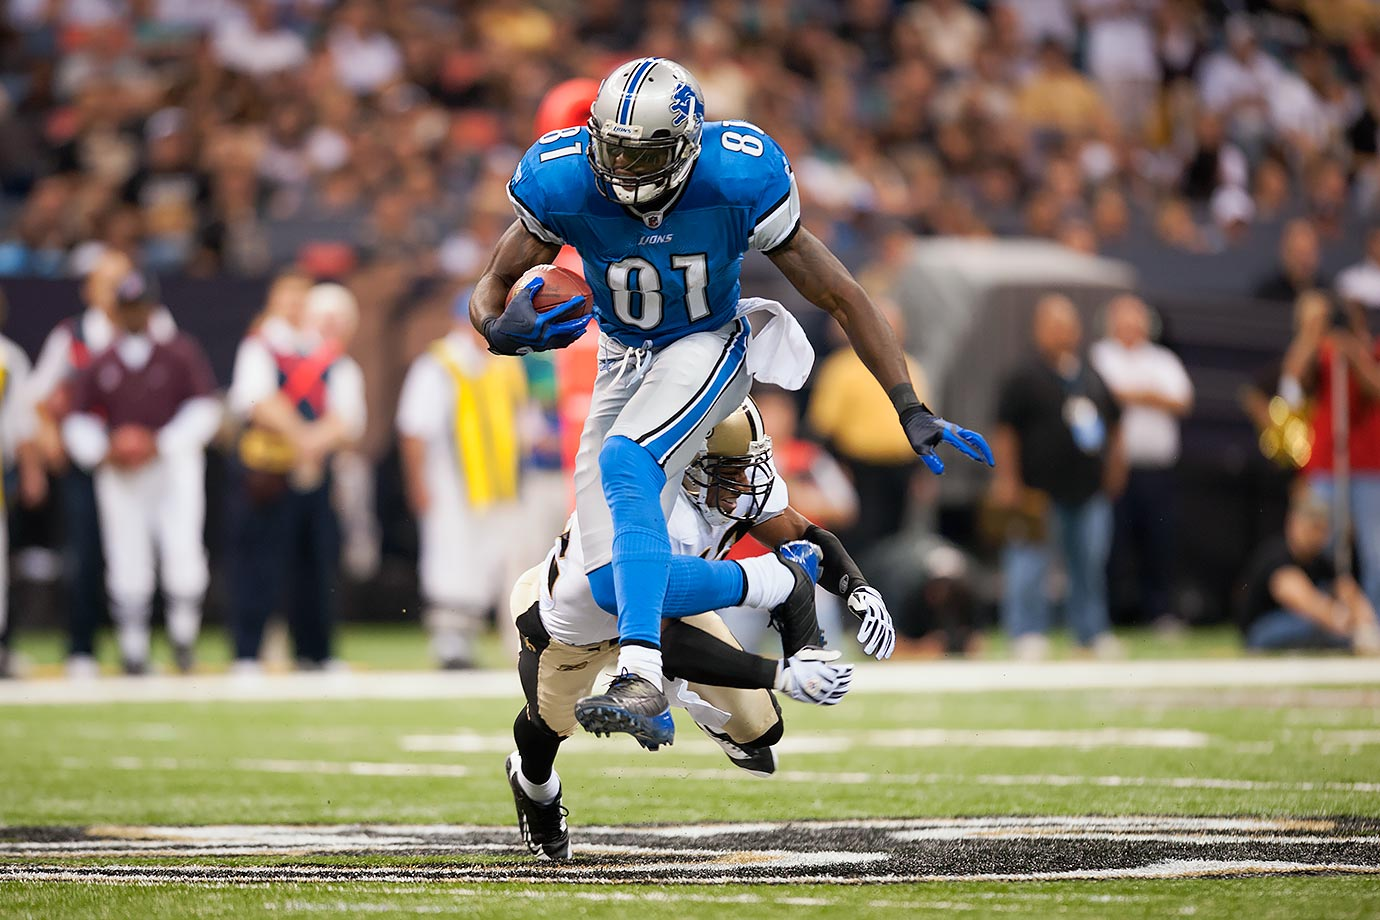 Sept. 13, 2009 — Detroit Lions vs. New Orleans Saints